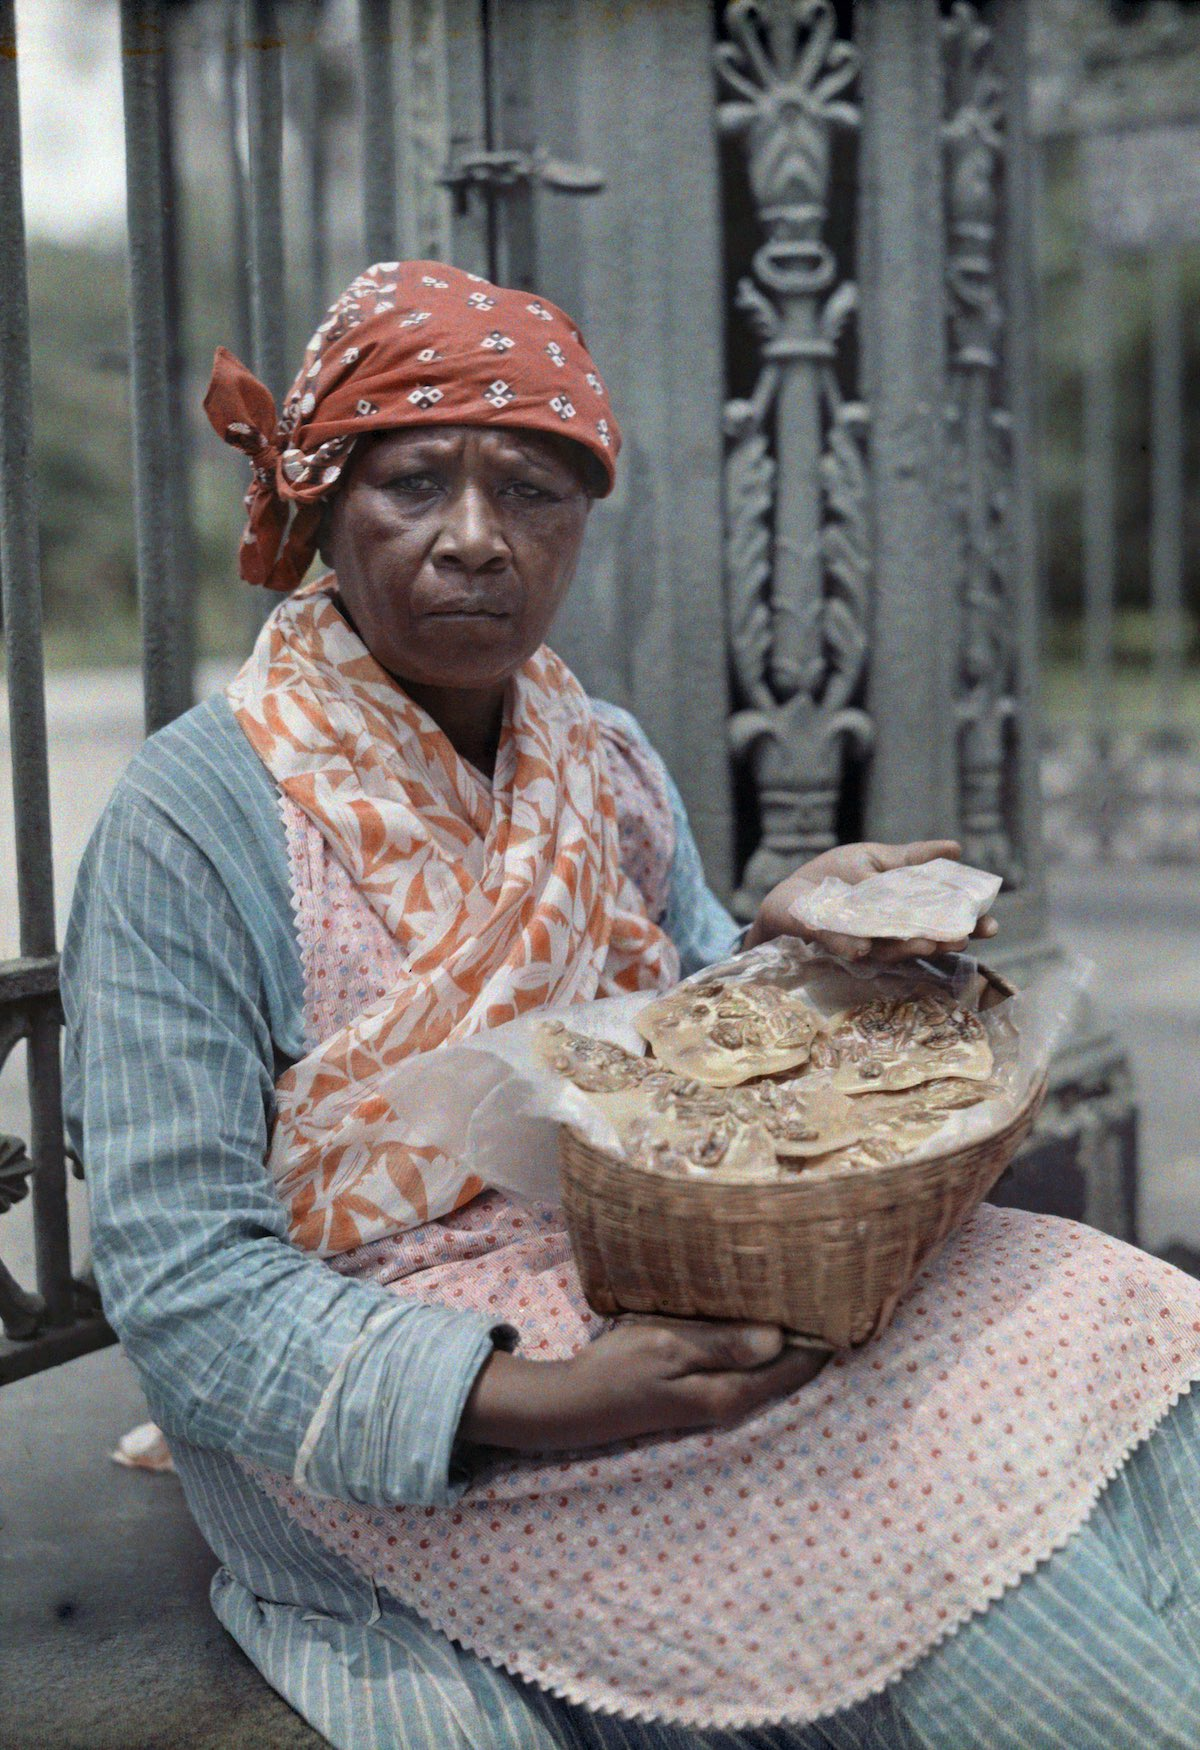 1920s pictures of Praline saleswoman in the French Quarter.